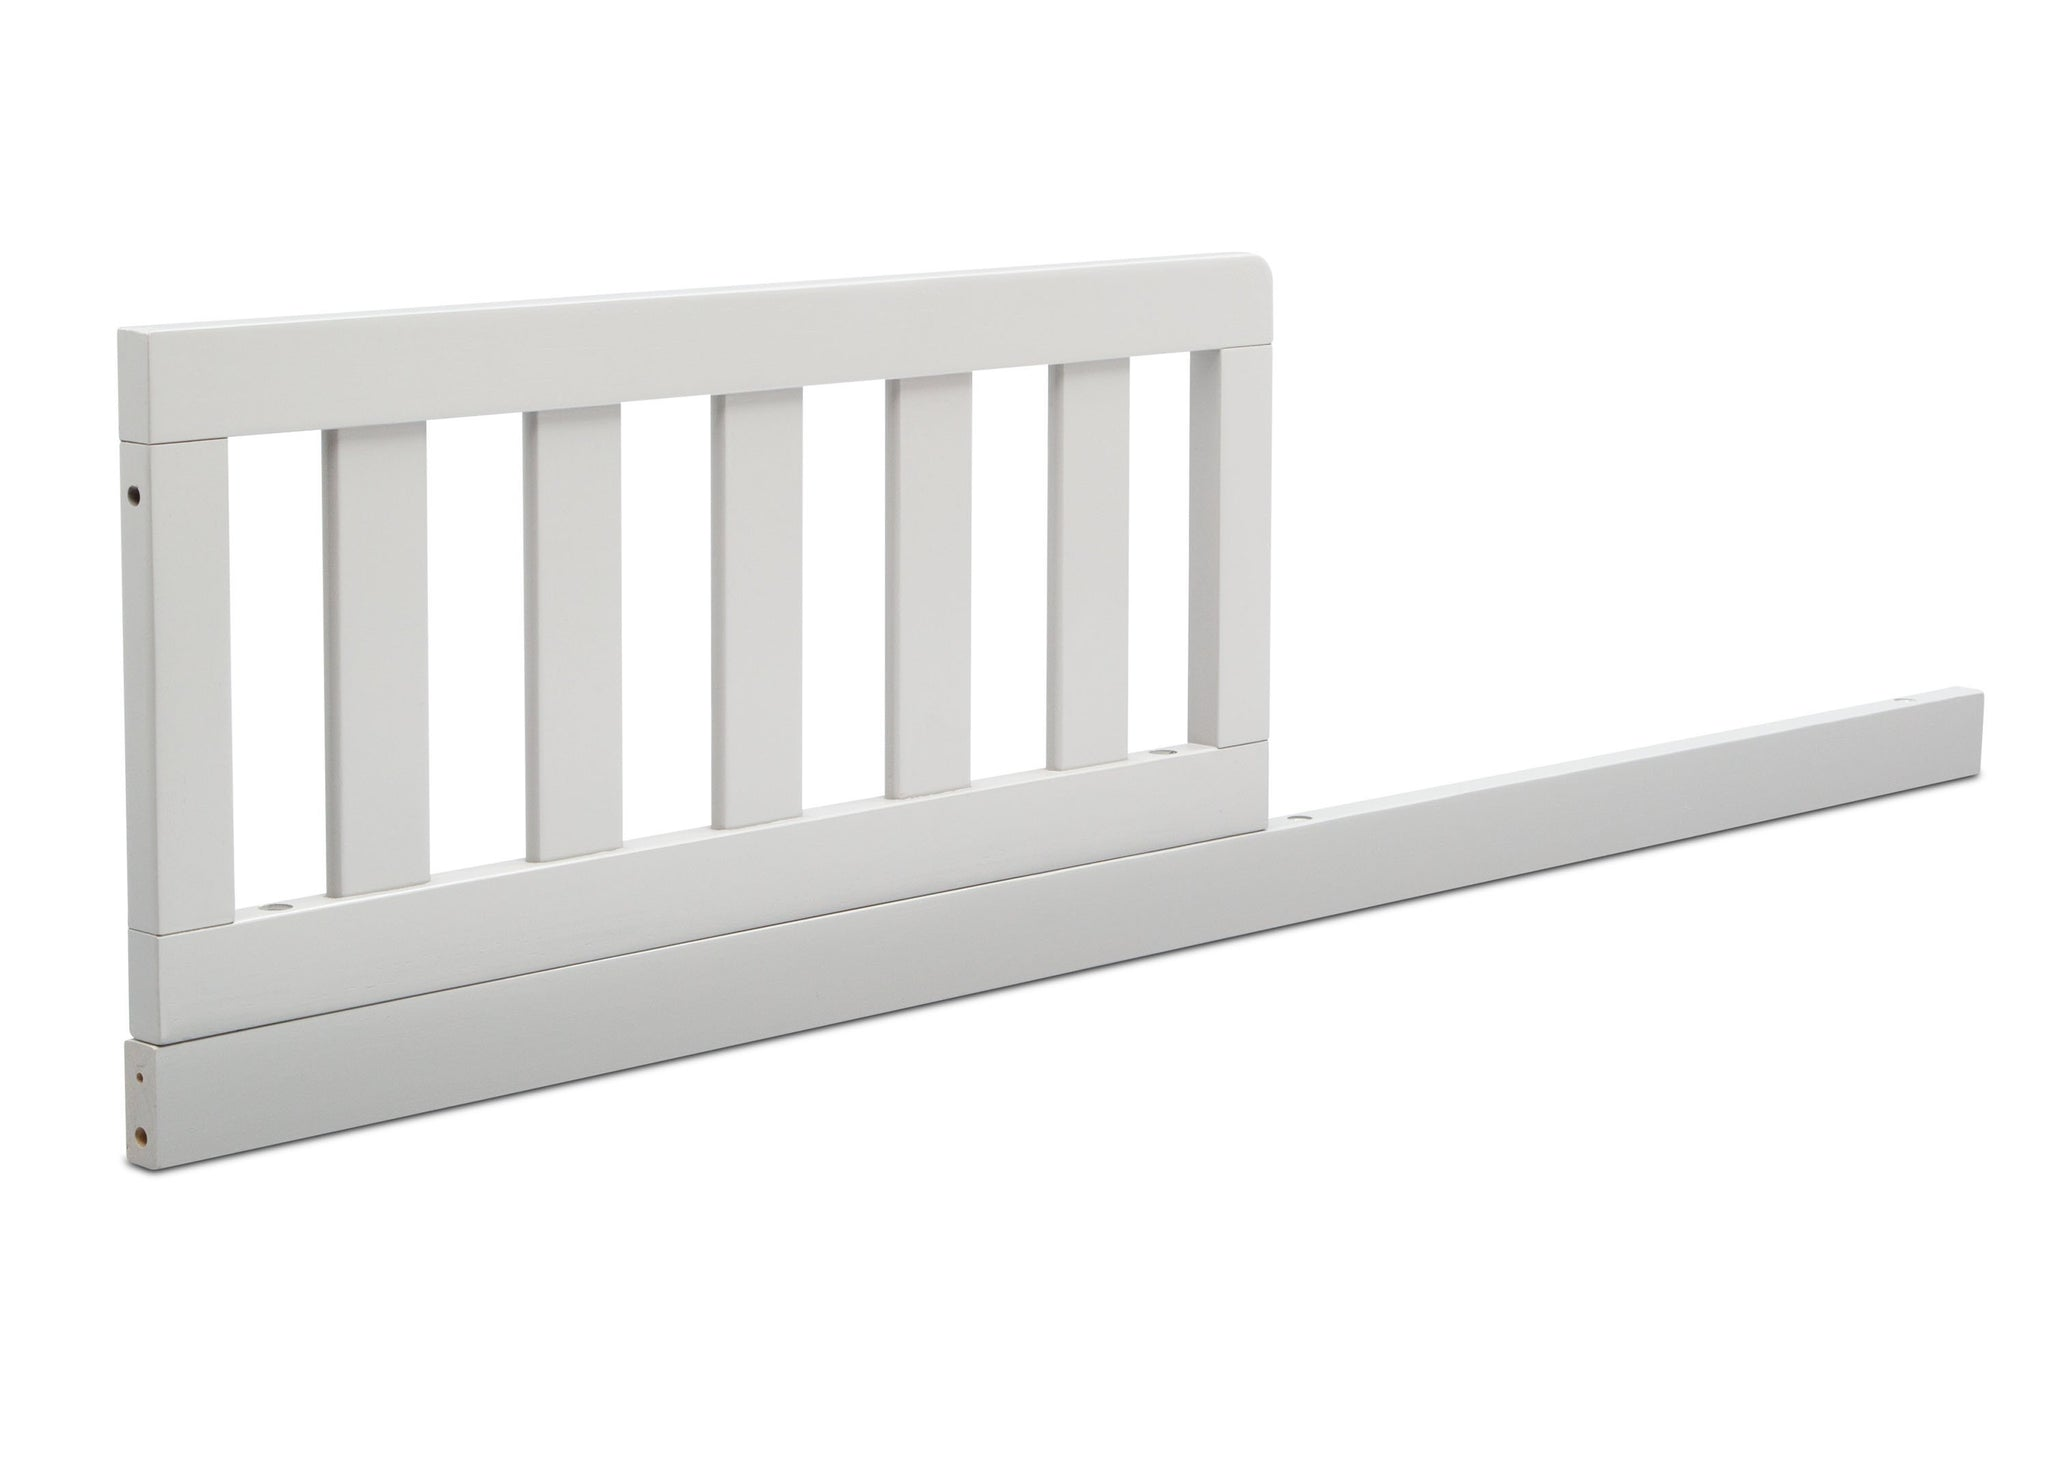 Serta Daybed/Toddler Guardrail Kit (707725) Bianca (130) Angle b2b